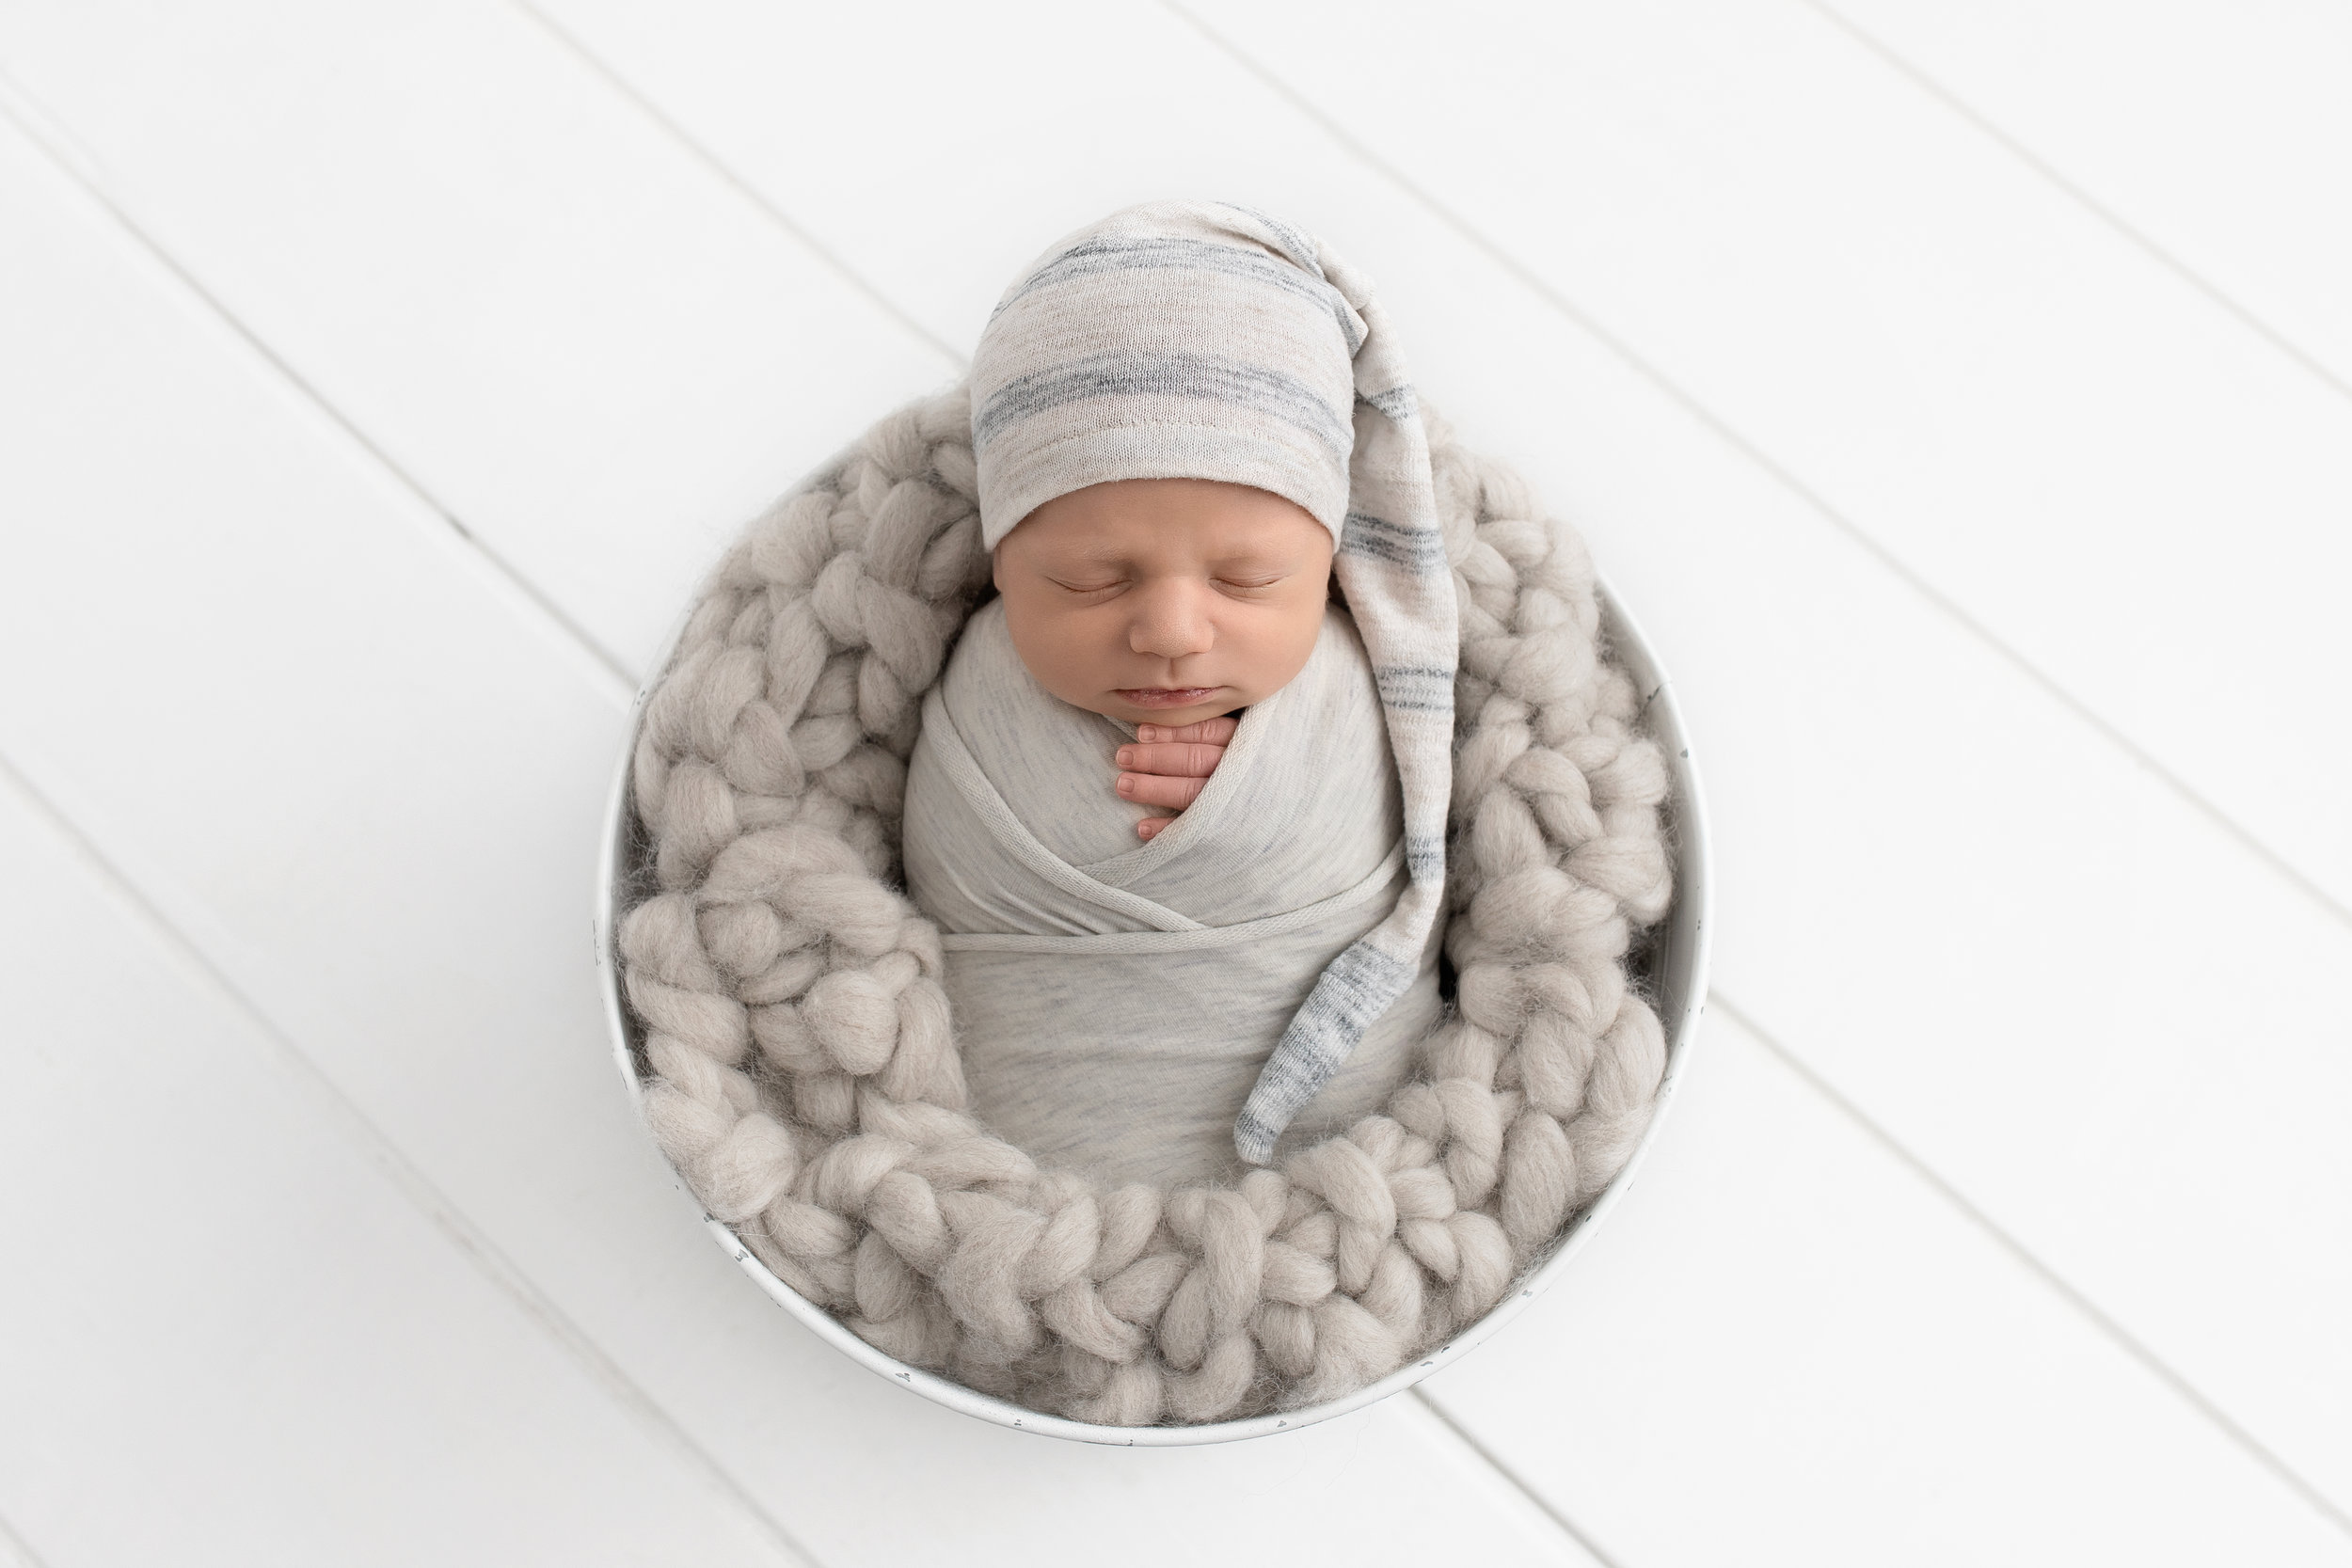 baby photo session edmonton newborn photoshoot st-albert best photographer alberta